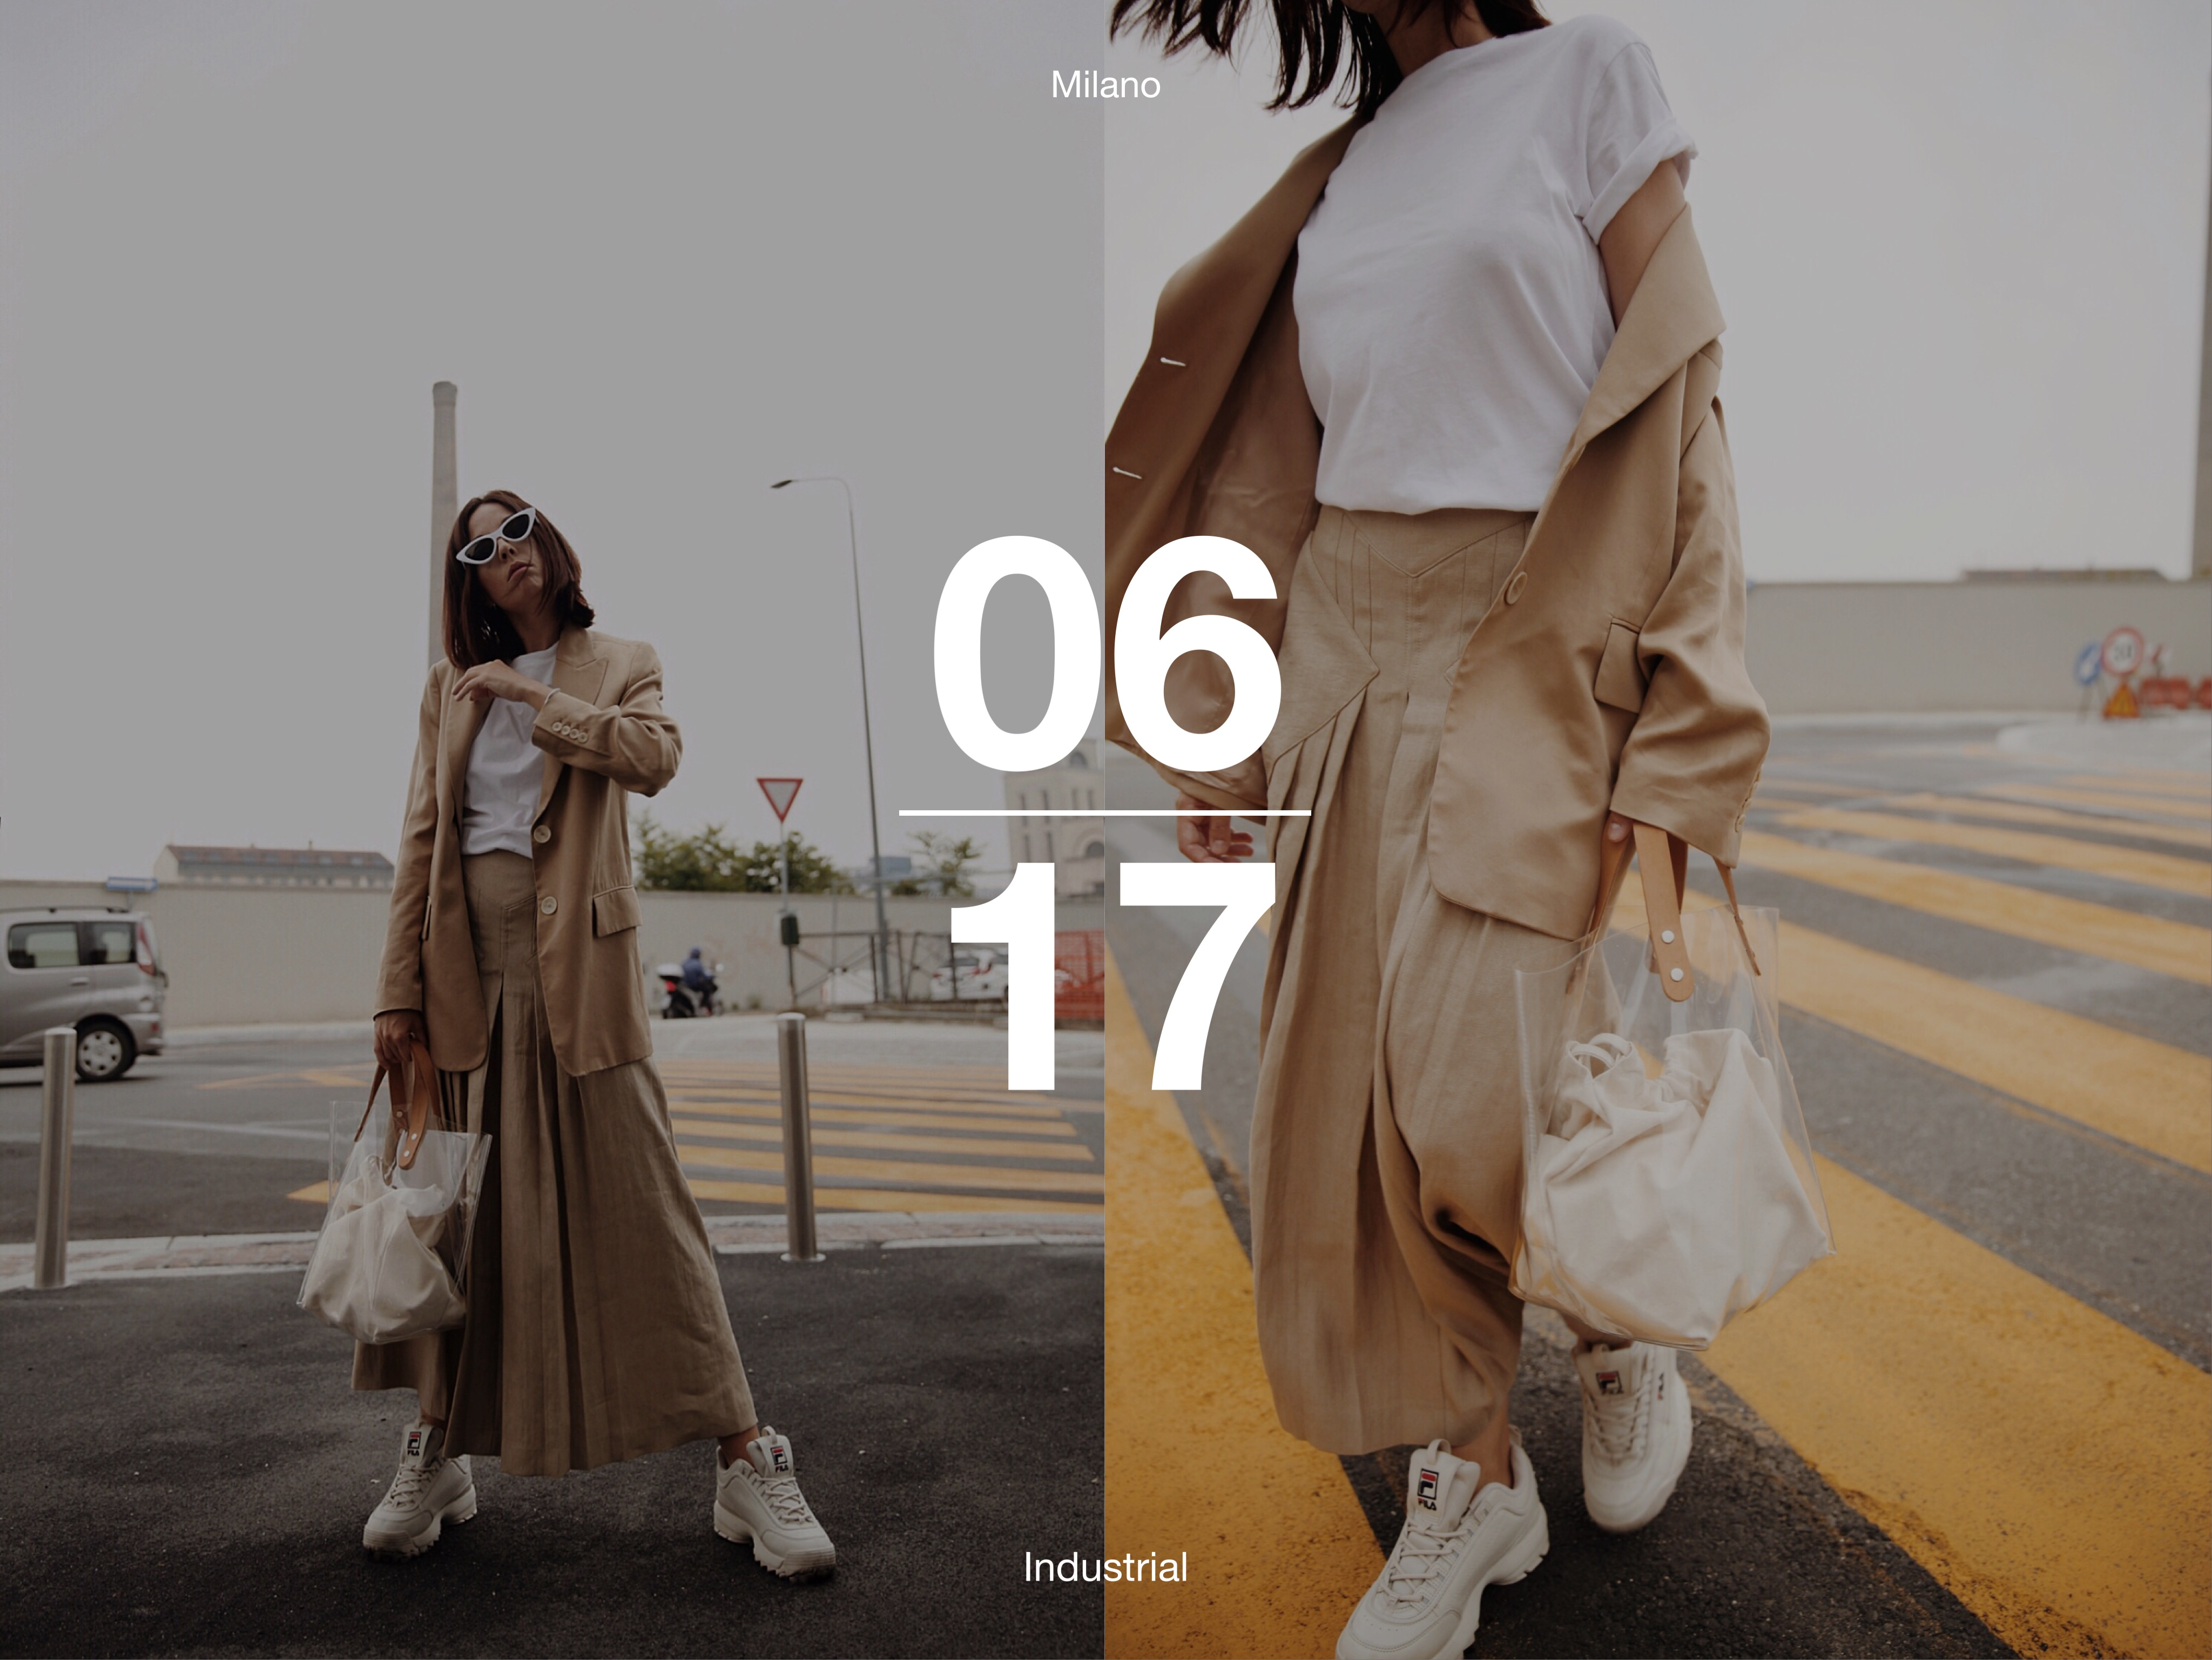 Streetwear culture, theladycracy.it, massimo dutti outfit 2018, fila scarpe outfit 2018, outfit estate 2018, minimal blogger 2018, beige aesthetic, fashion editorial blog 2018, elisa bellino, come vestirsi milano 2018